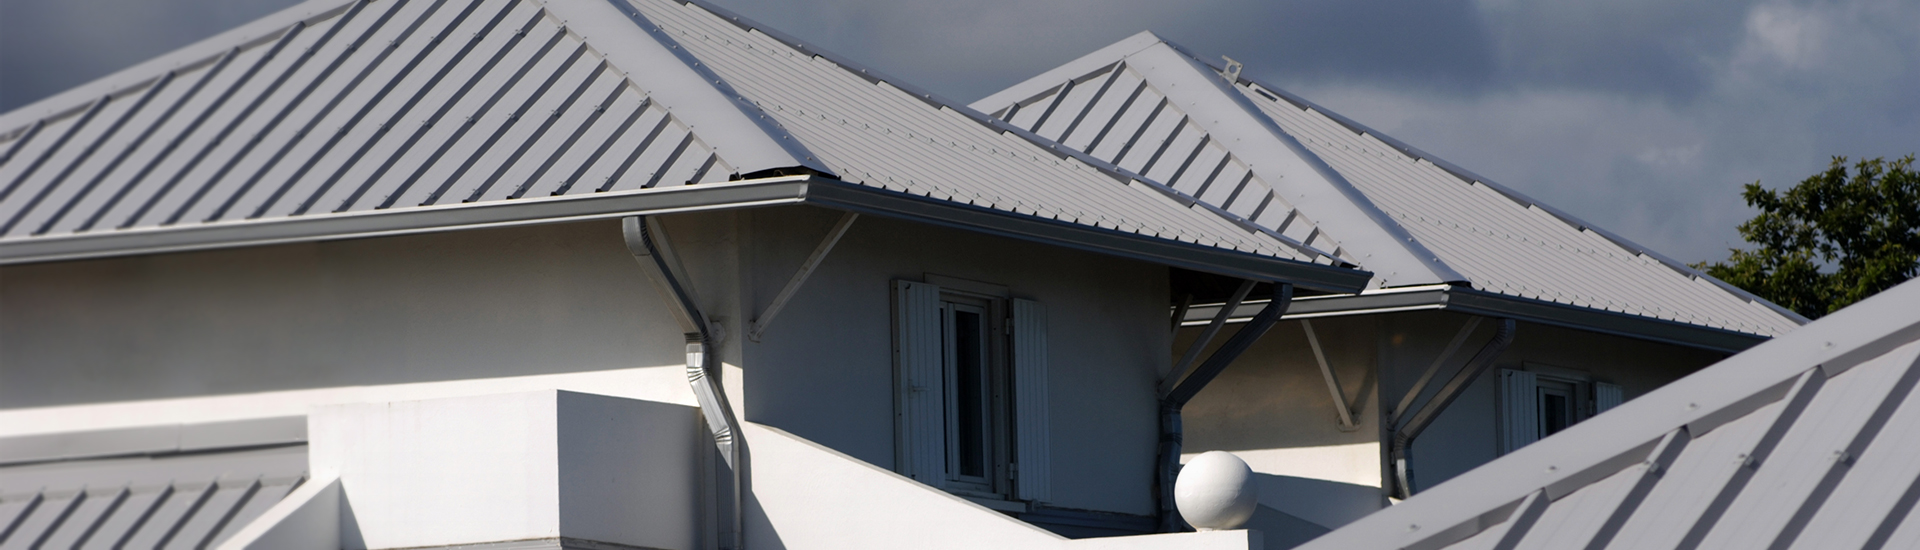 Cbh Roofing Just Another Wordpress Site